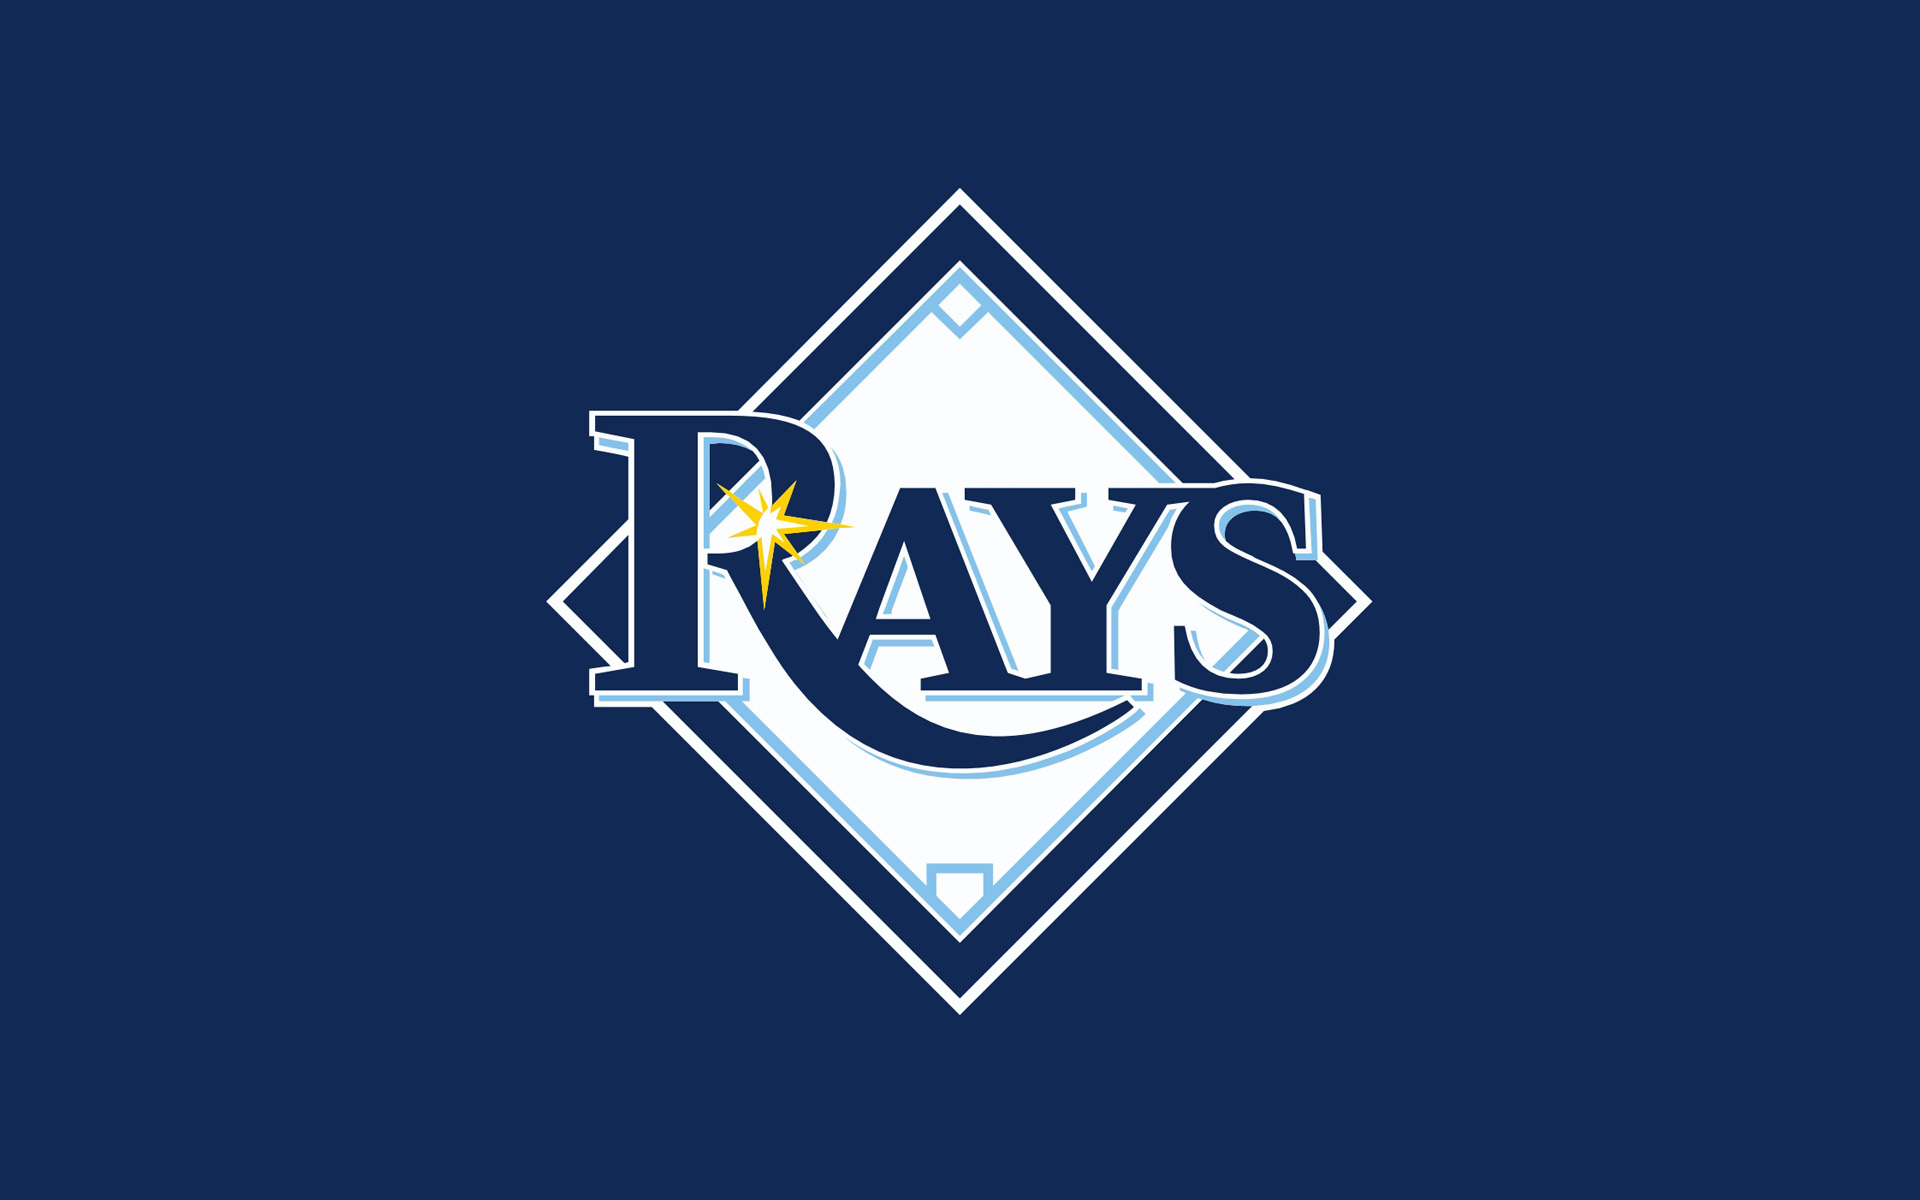 Tampa Bay Rays Wallpapers HD